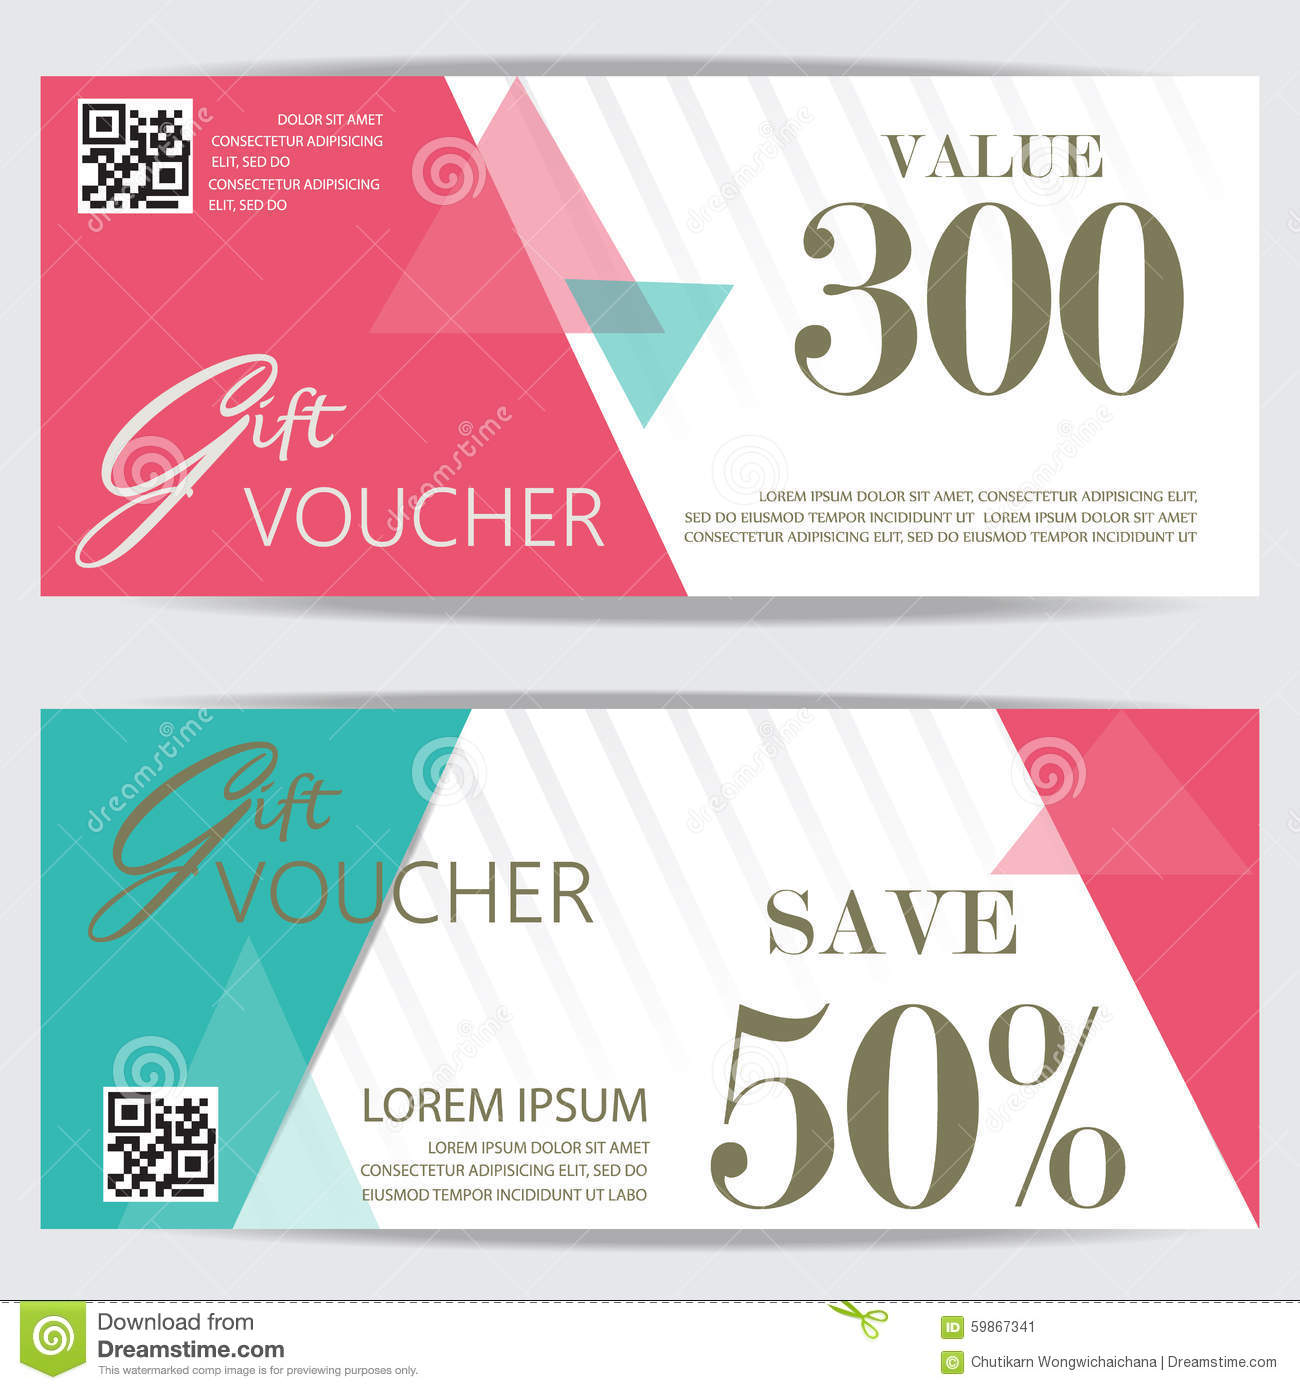 Free coupon templates for business